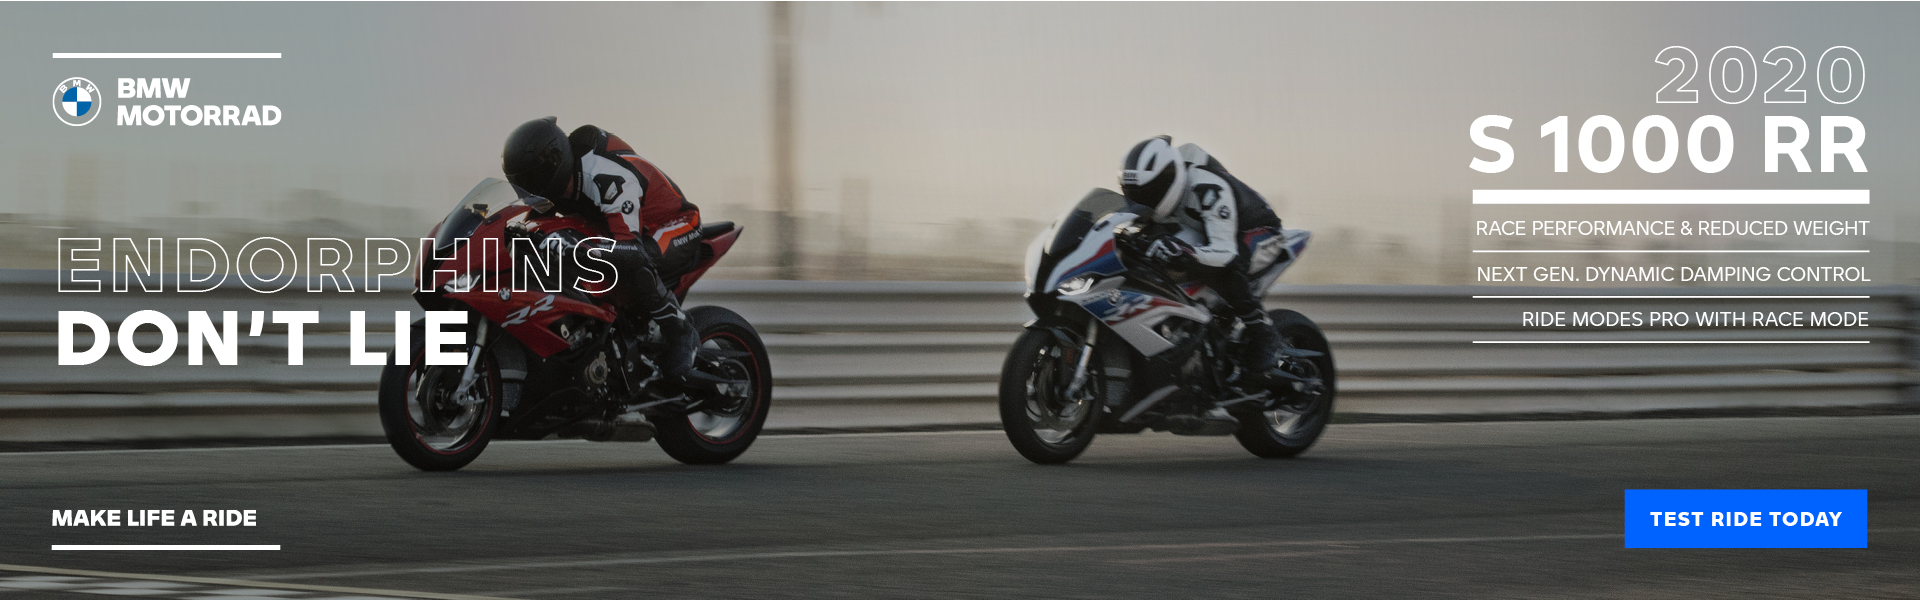 2020 S 1000 RR - TEST RIDE TODAY